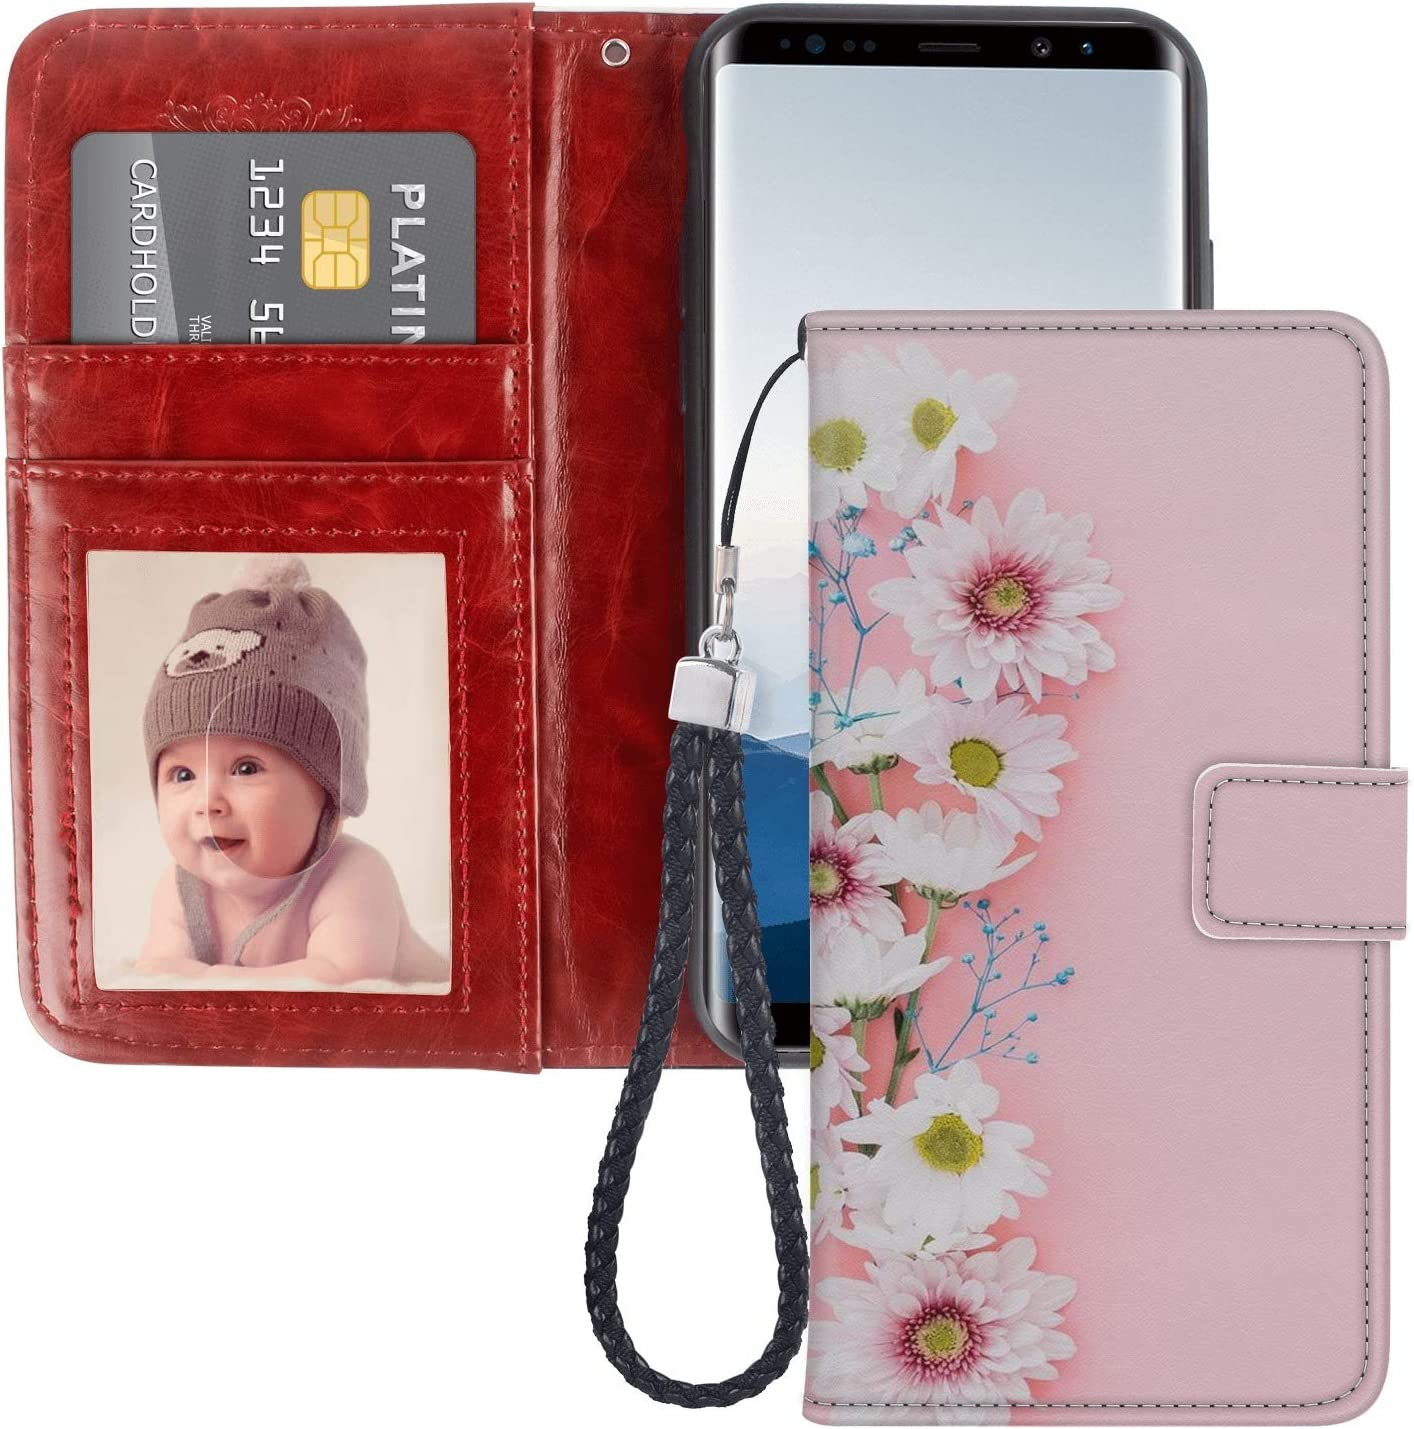 Amazon Com Samsung Galaxy Note 8 Wallet Case Cute Wallpapers For Iphone Pattern Design Protective Pu Leather Flip Cover With Credit Card Slots And Side Cash Pocket Magnetic Clasp Closure